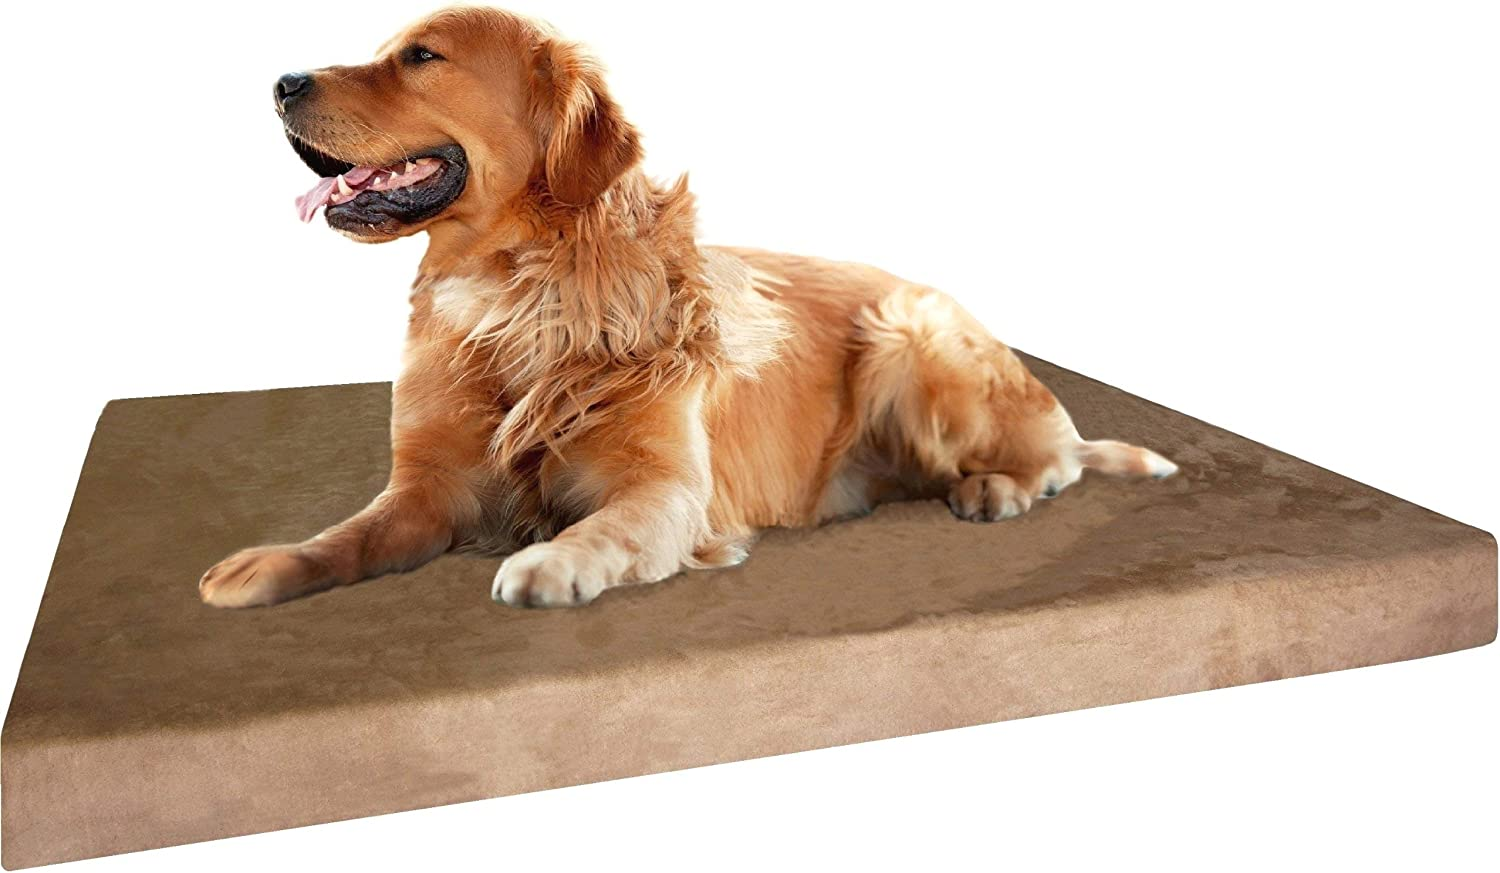 Dogbed4less Extra Large True Sale special price Orthopedic Bed Gel Foam Finally popular brand Memory Dog